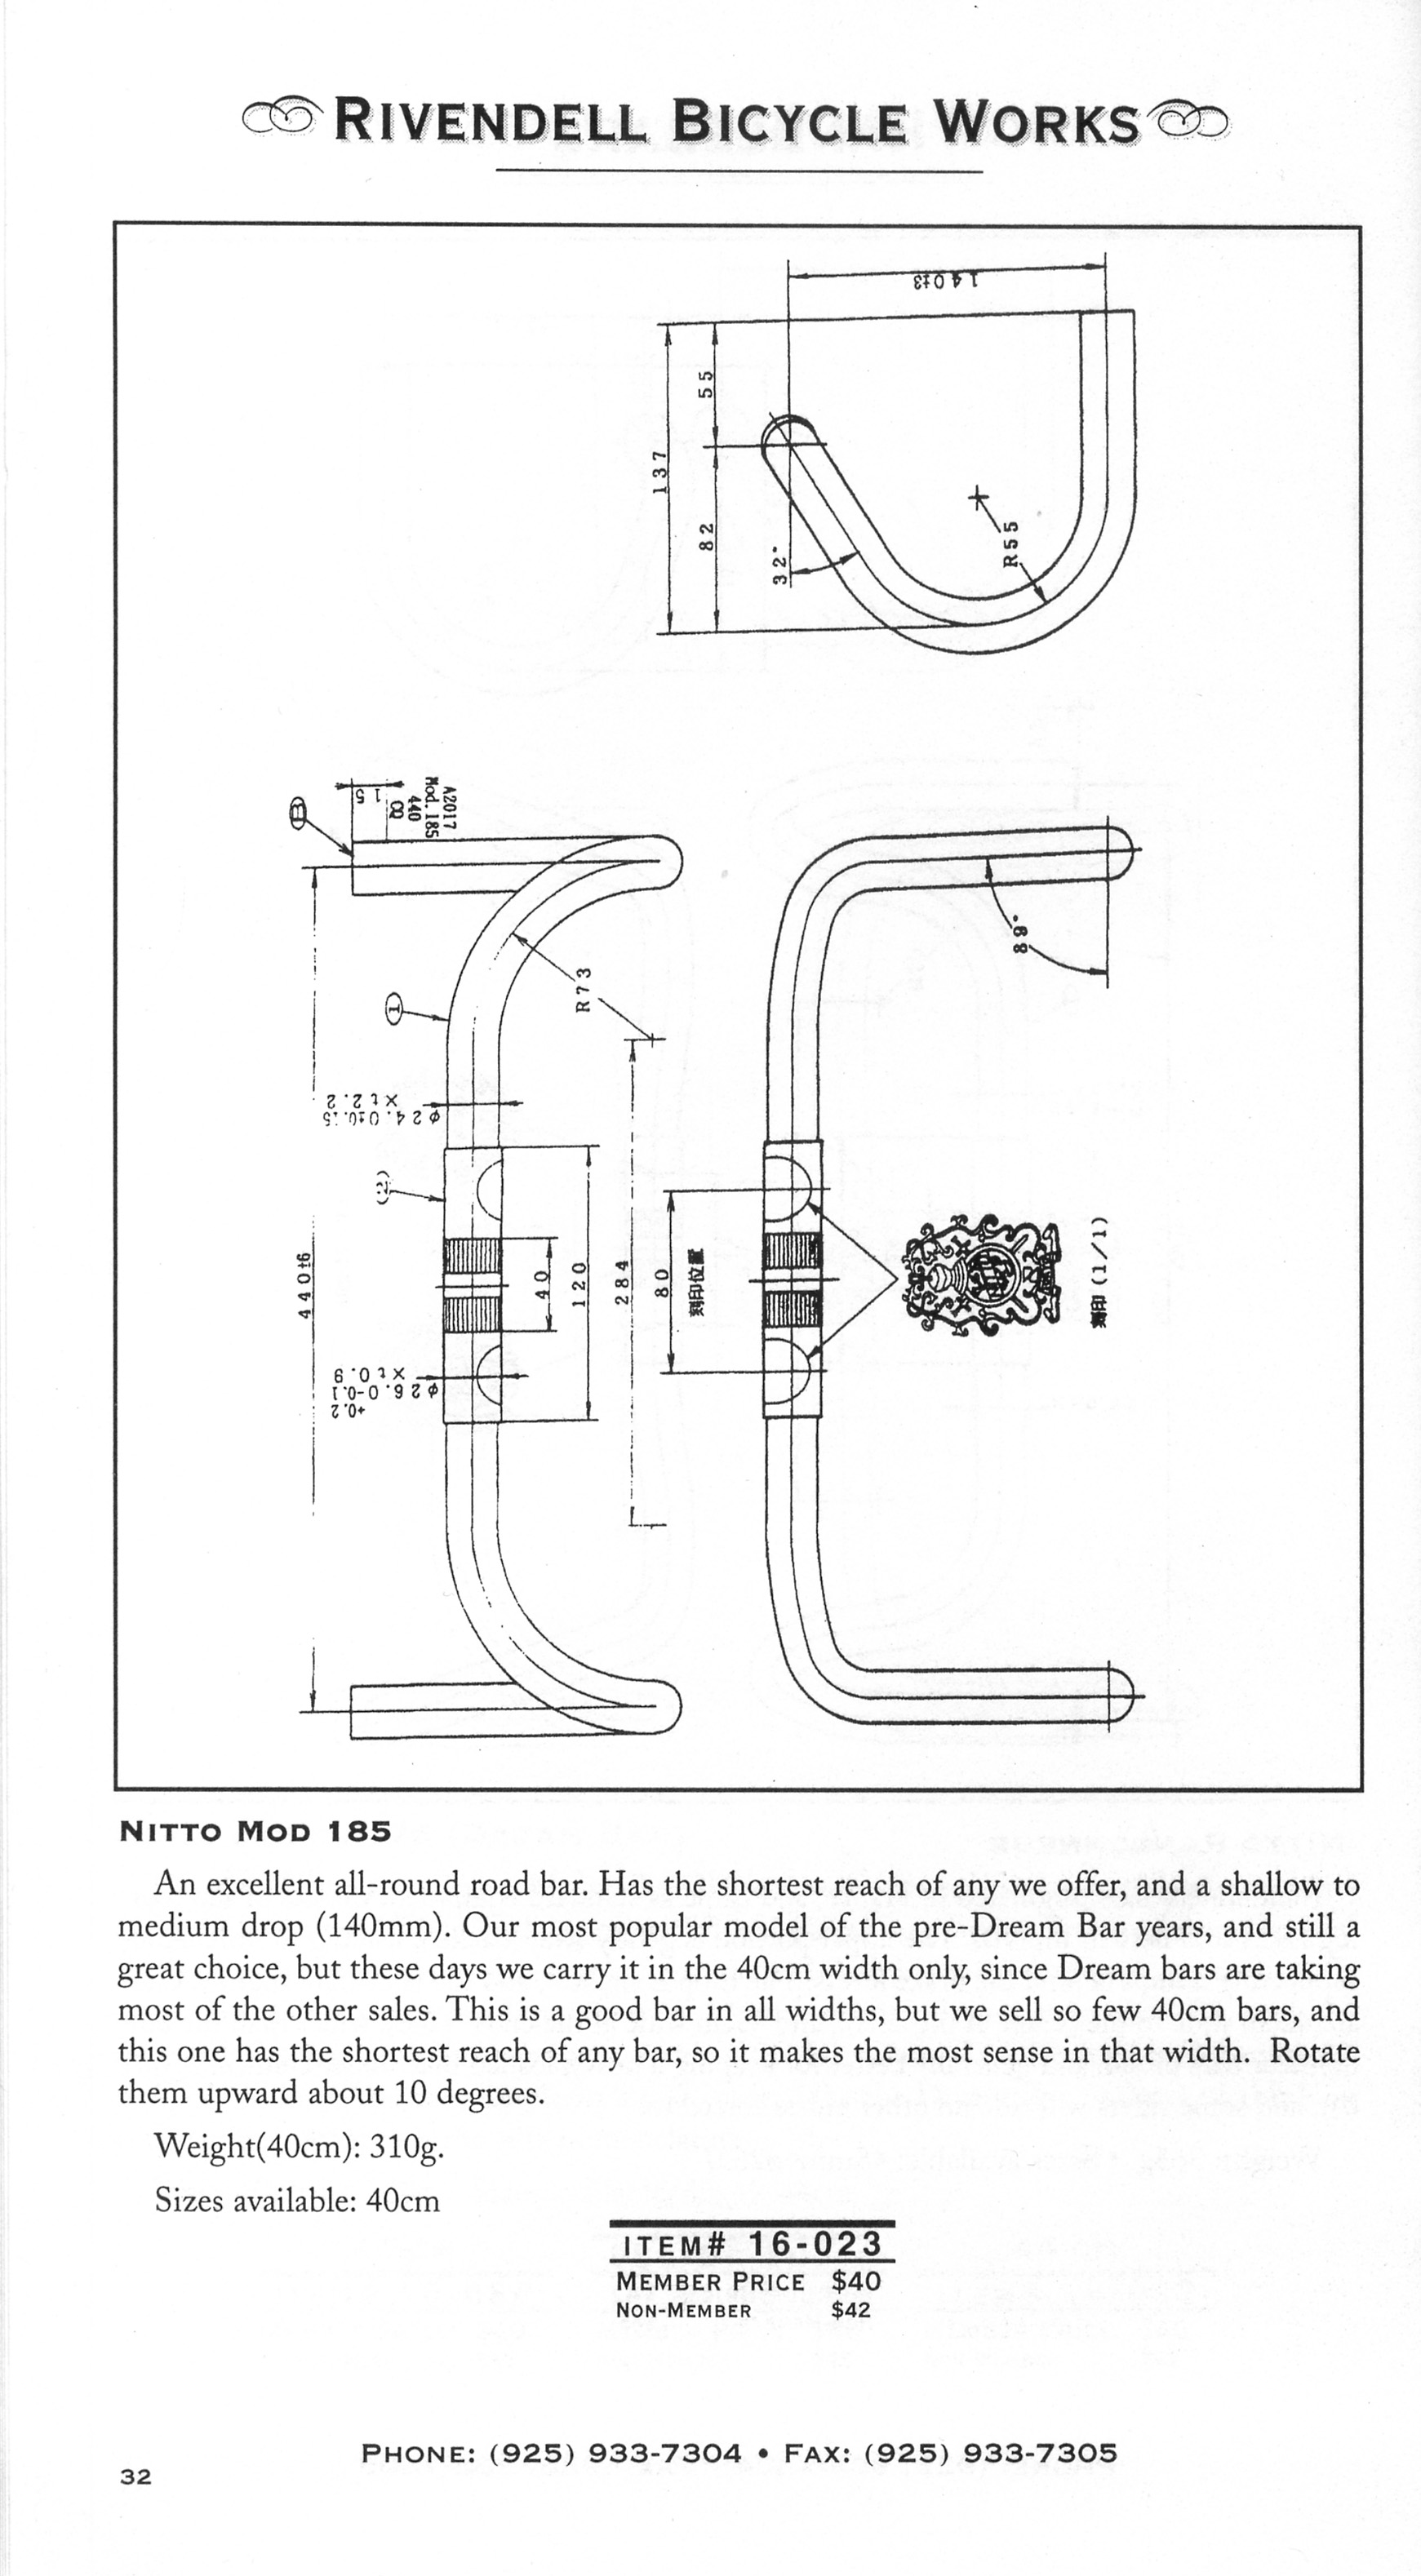 Cyclofiend Rivendell Bicycle Works Diagram On How To Tie A Images Pictures Becuo Size Scan At 300 Dpi